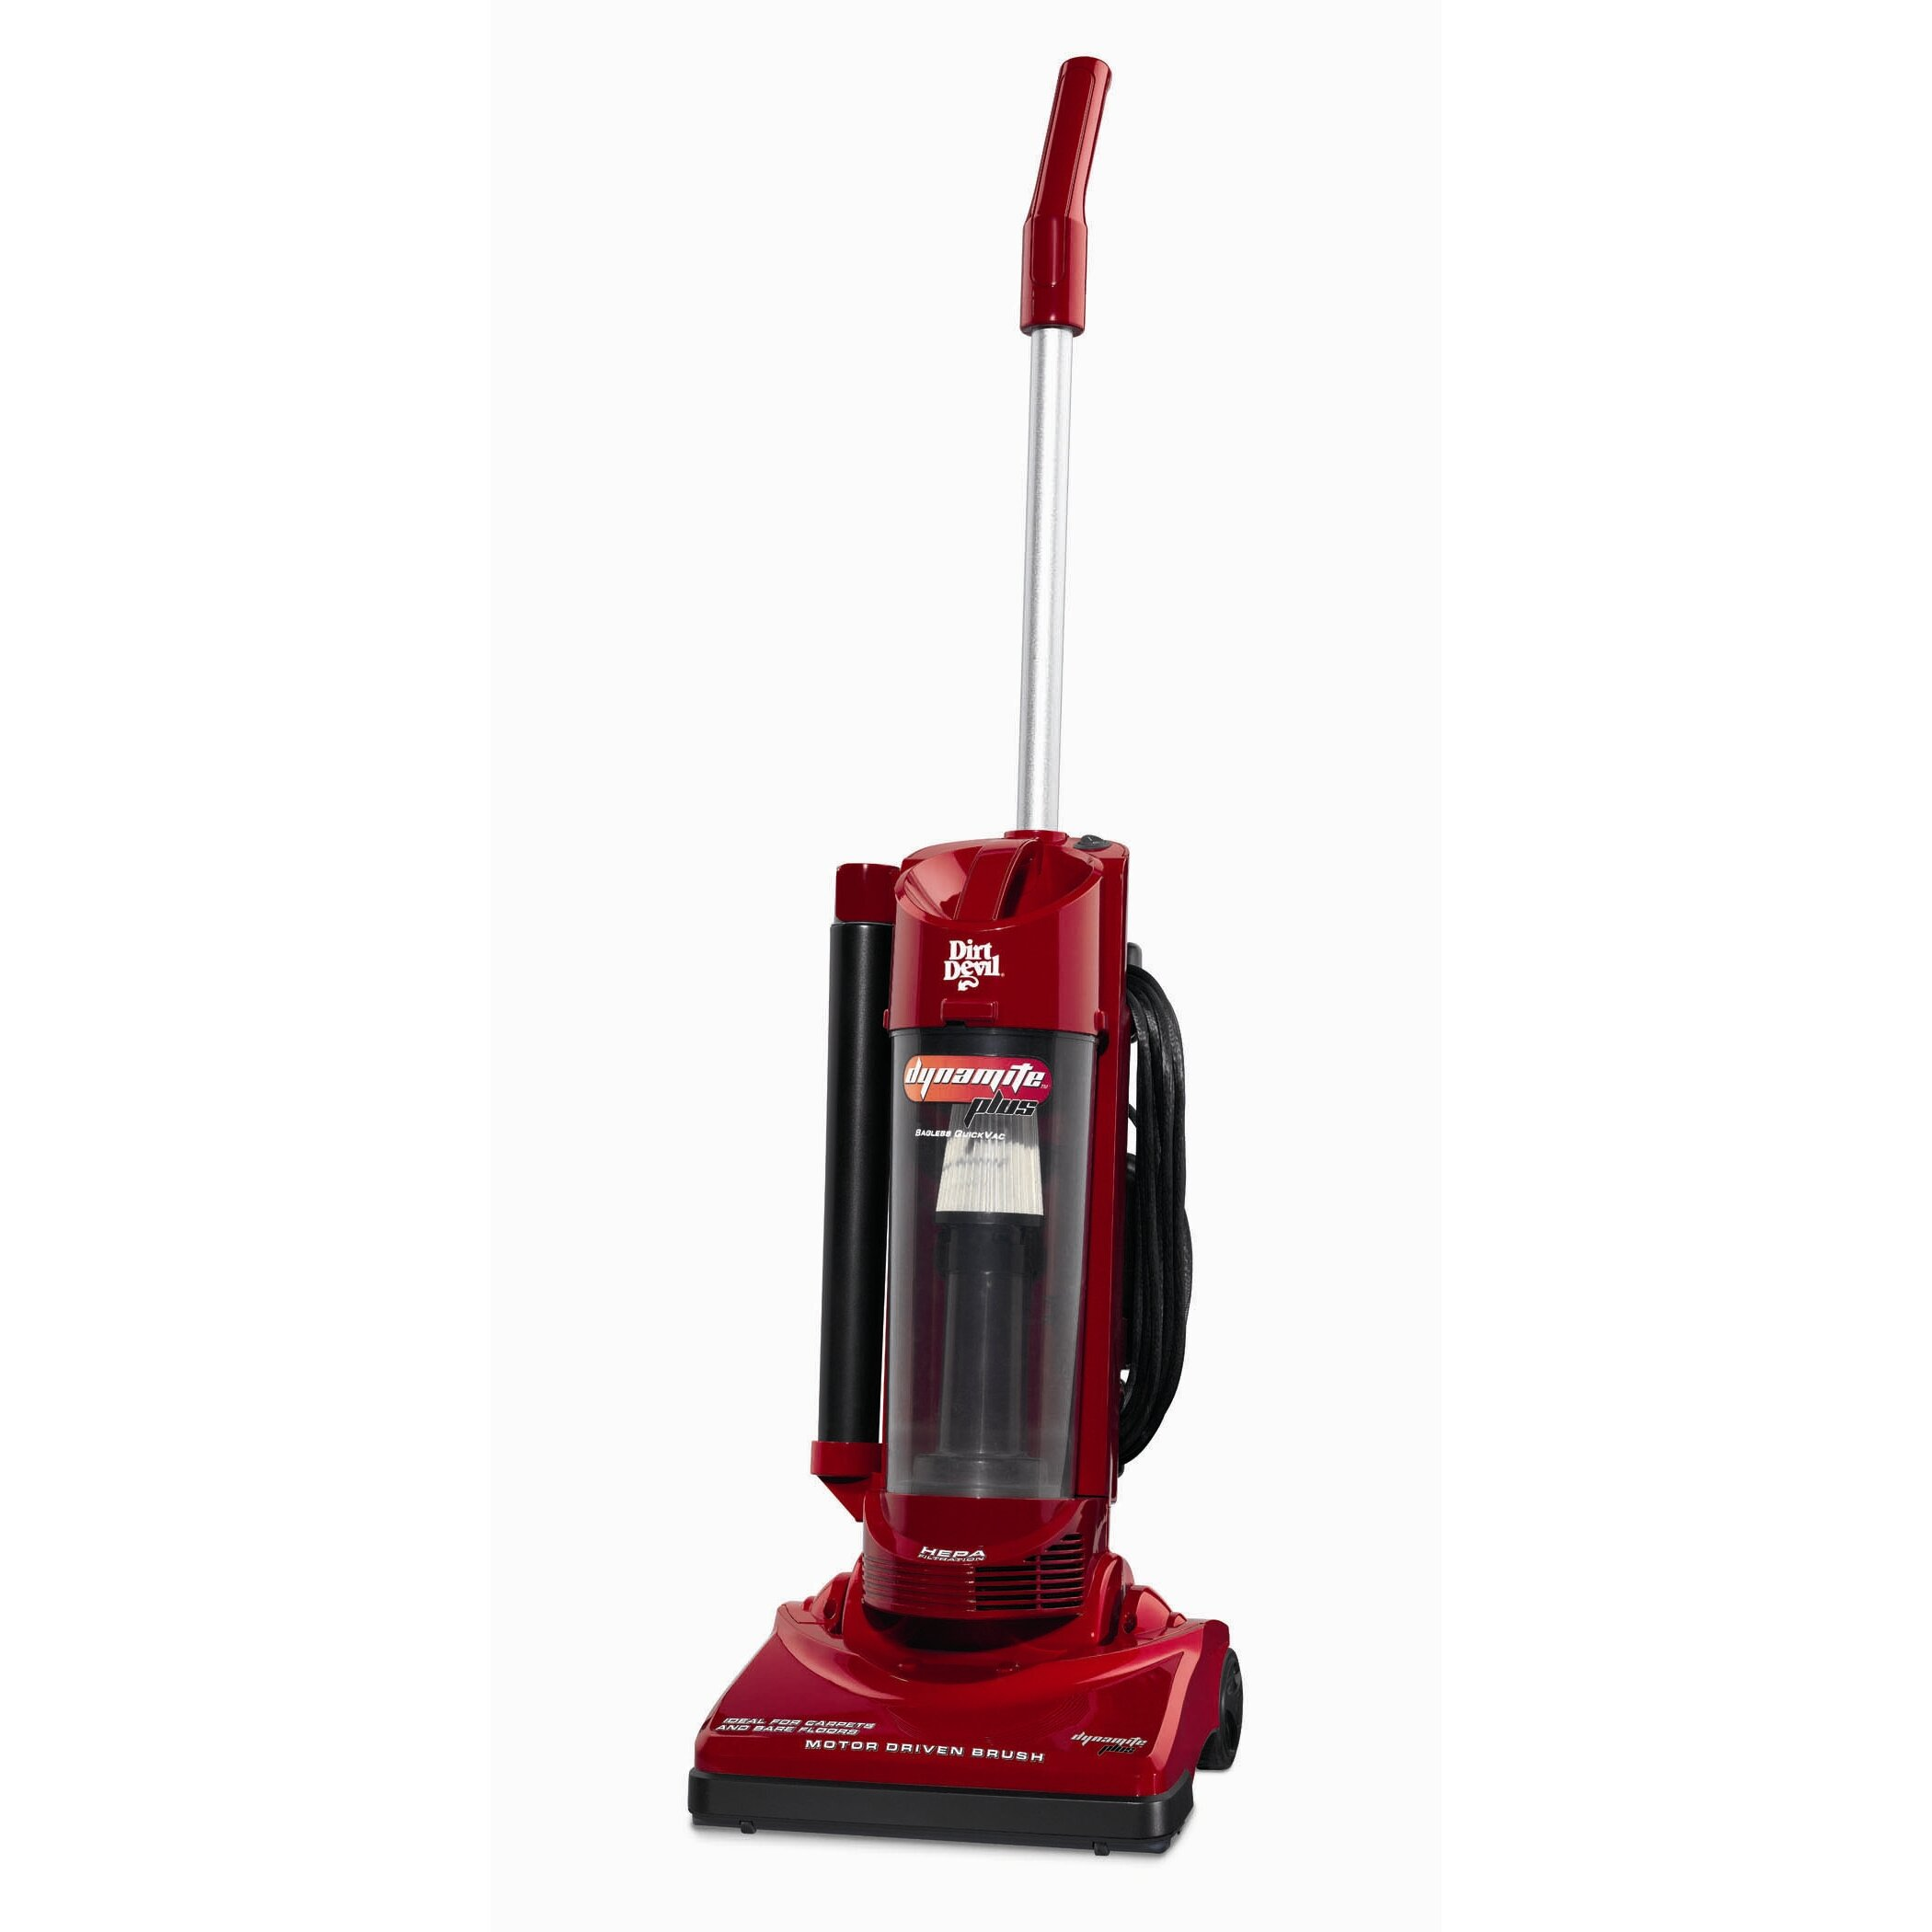 Dirt Devil Dynamite Upright Vacuum Cleaner with Tools  : Dirt Devil Dynamite Upright Vacuum Cleaner with Tools M084650RED from www.wayfair.com size 2100 x 2100 jpeg 191kB